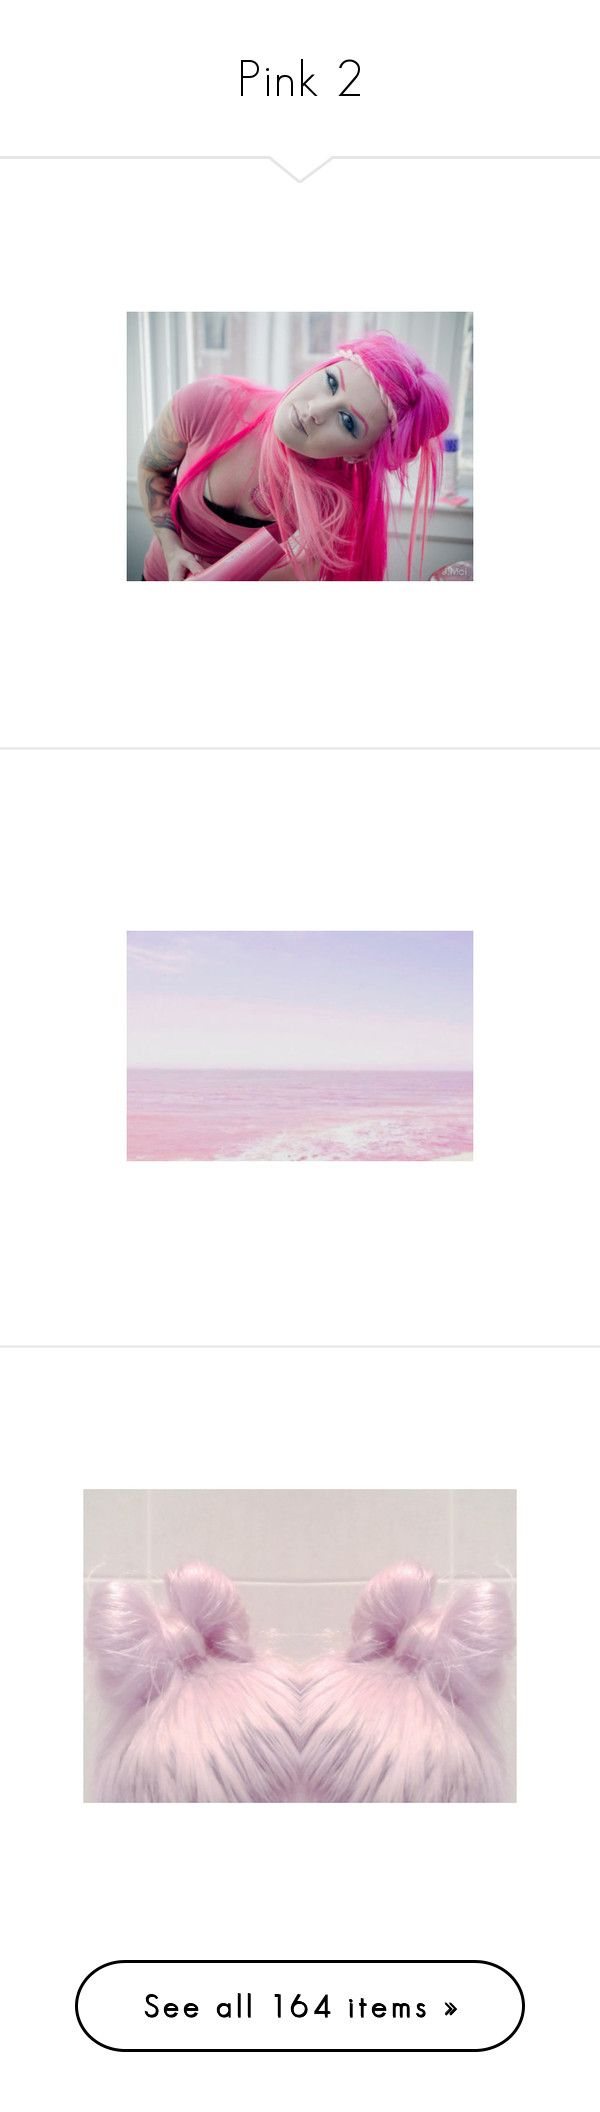 """""""Pink 2"""" by marciahofmant ❤ liked on Polyvore featuring pictures, backgrounds, photos, pink, purple, fillers, splash, hair, images and filler"""